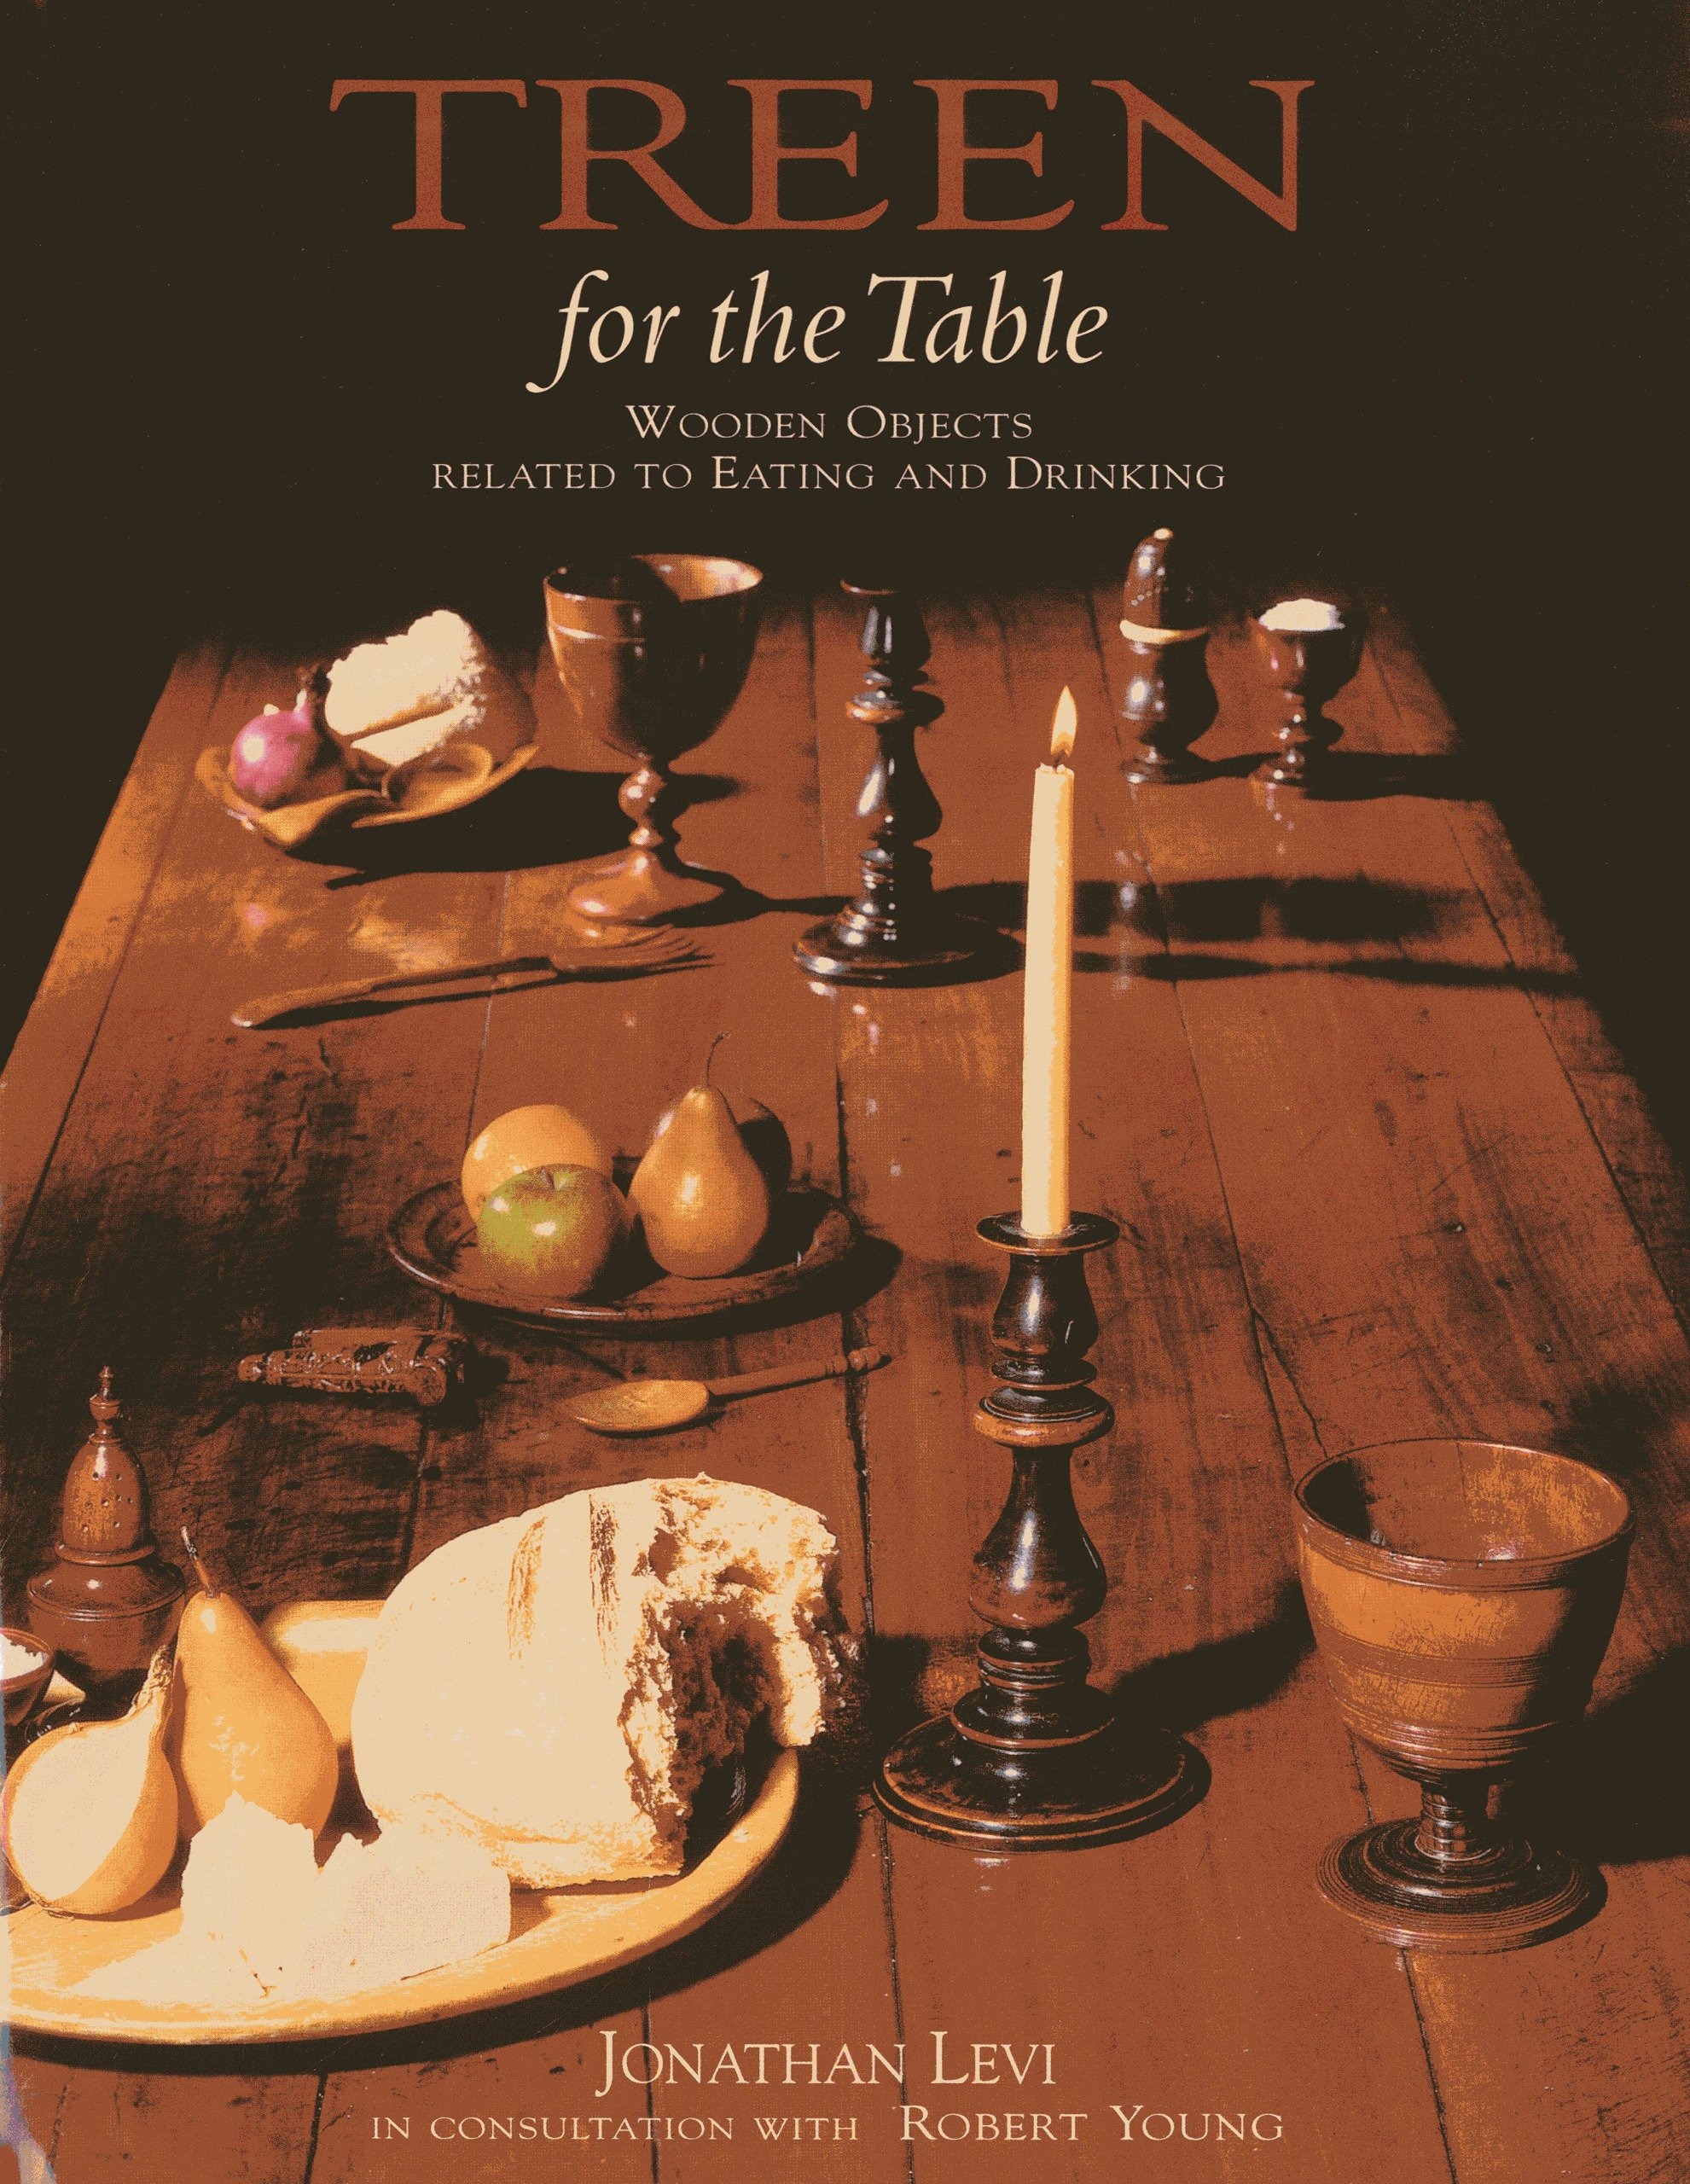 treen-for-the-table-wooden-objects-relating-to-eating-and-drinking